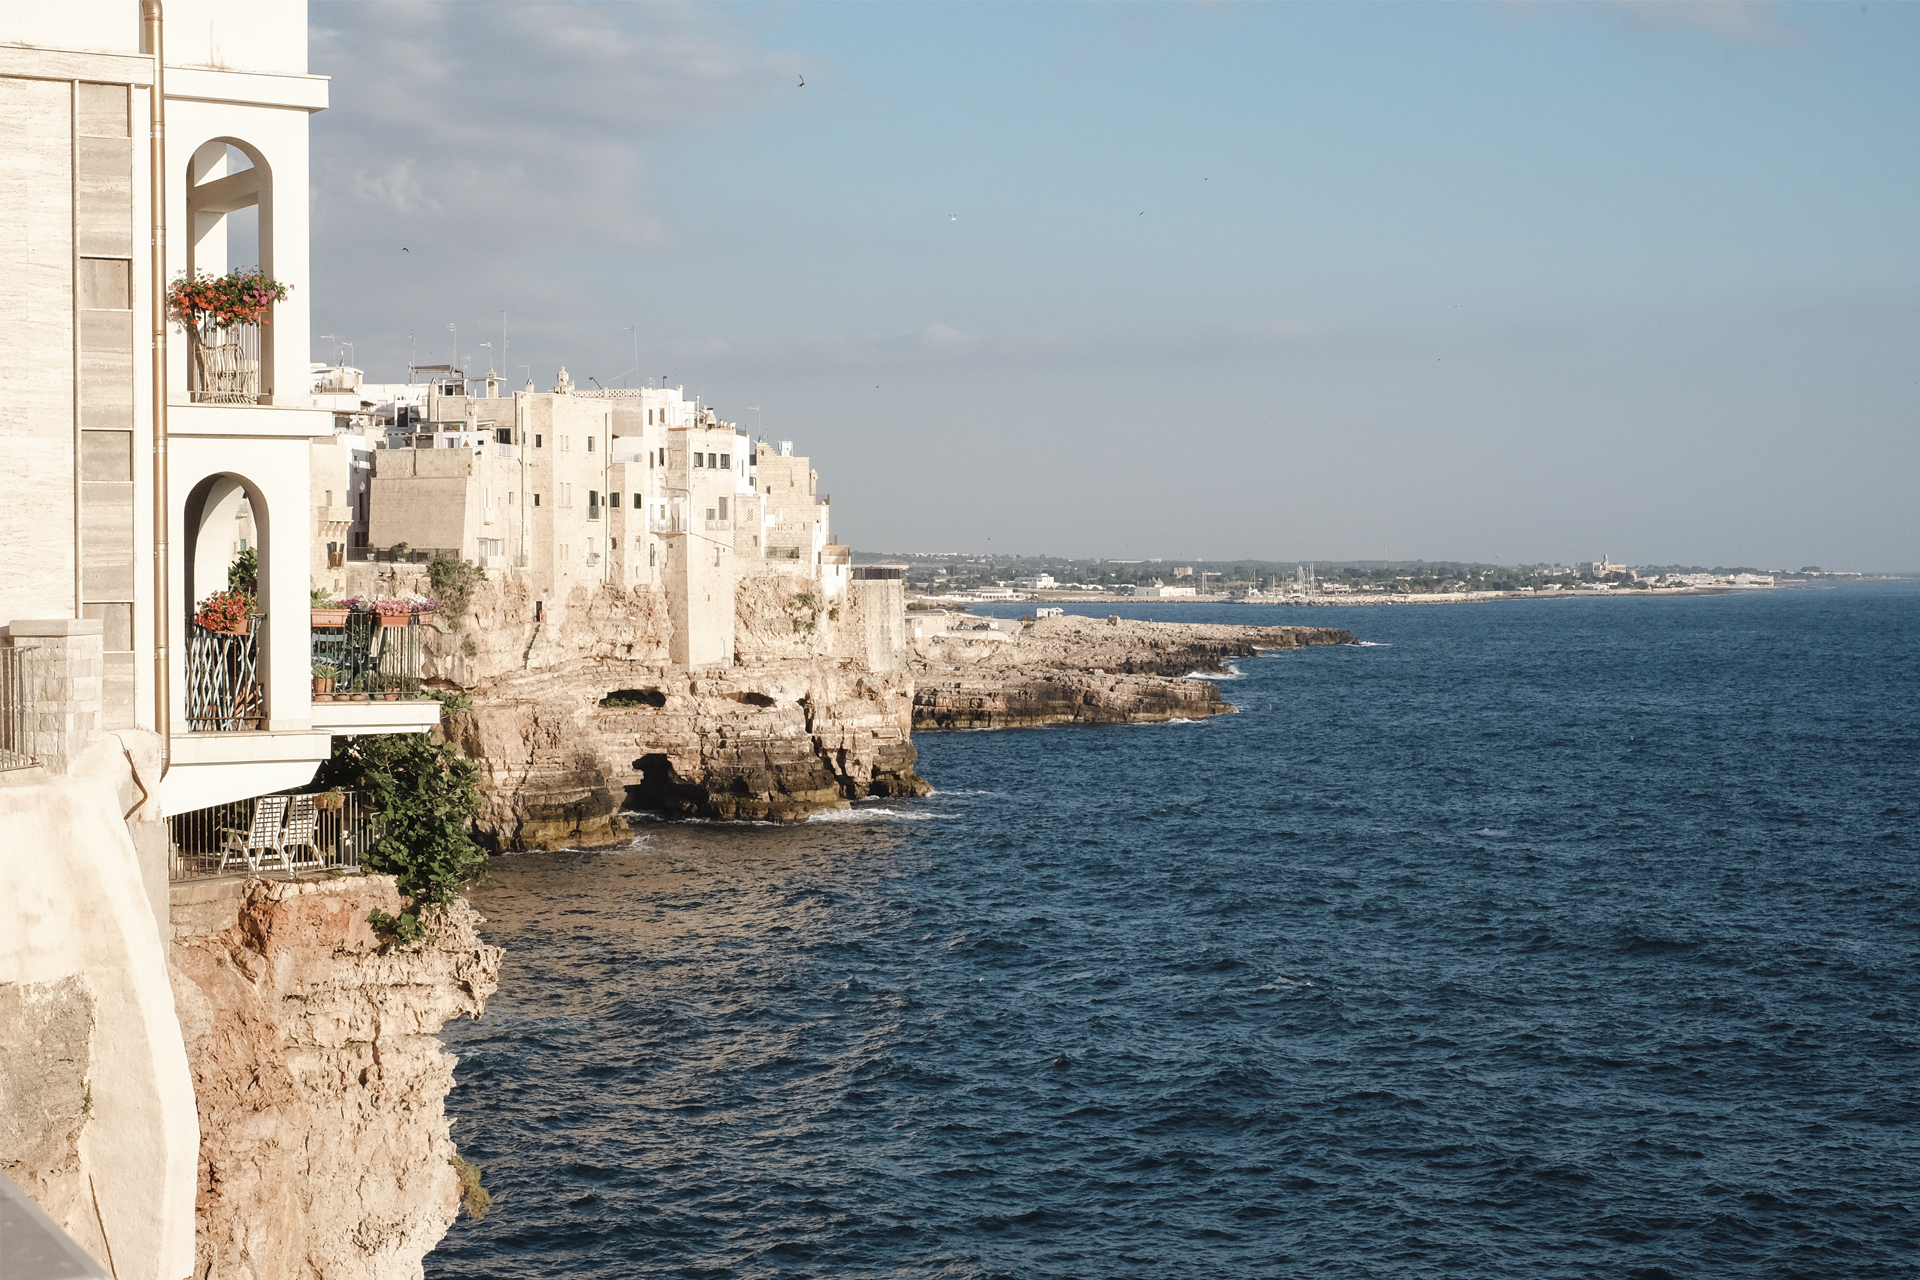 View of the sea, cliffs and buildings from a balcony in Polignano